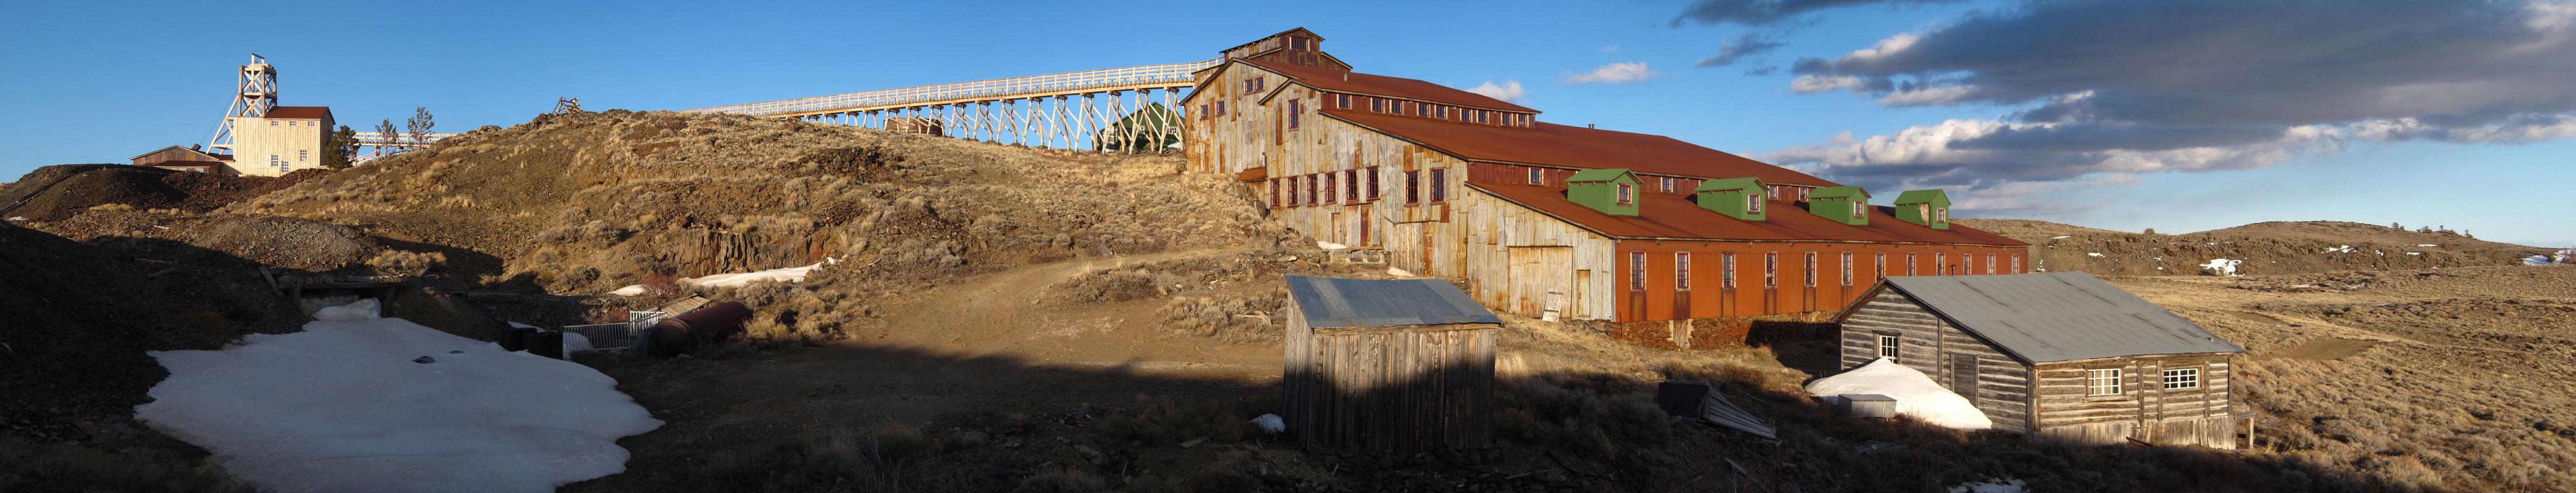 The exterior of the Carissa Mine.